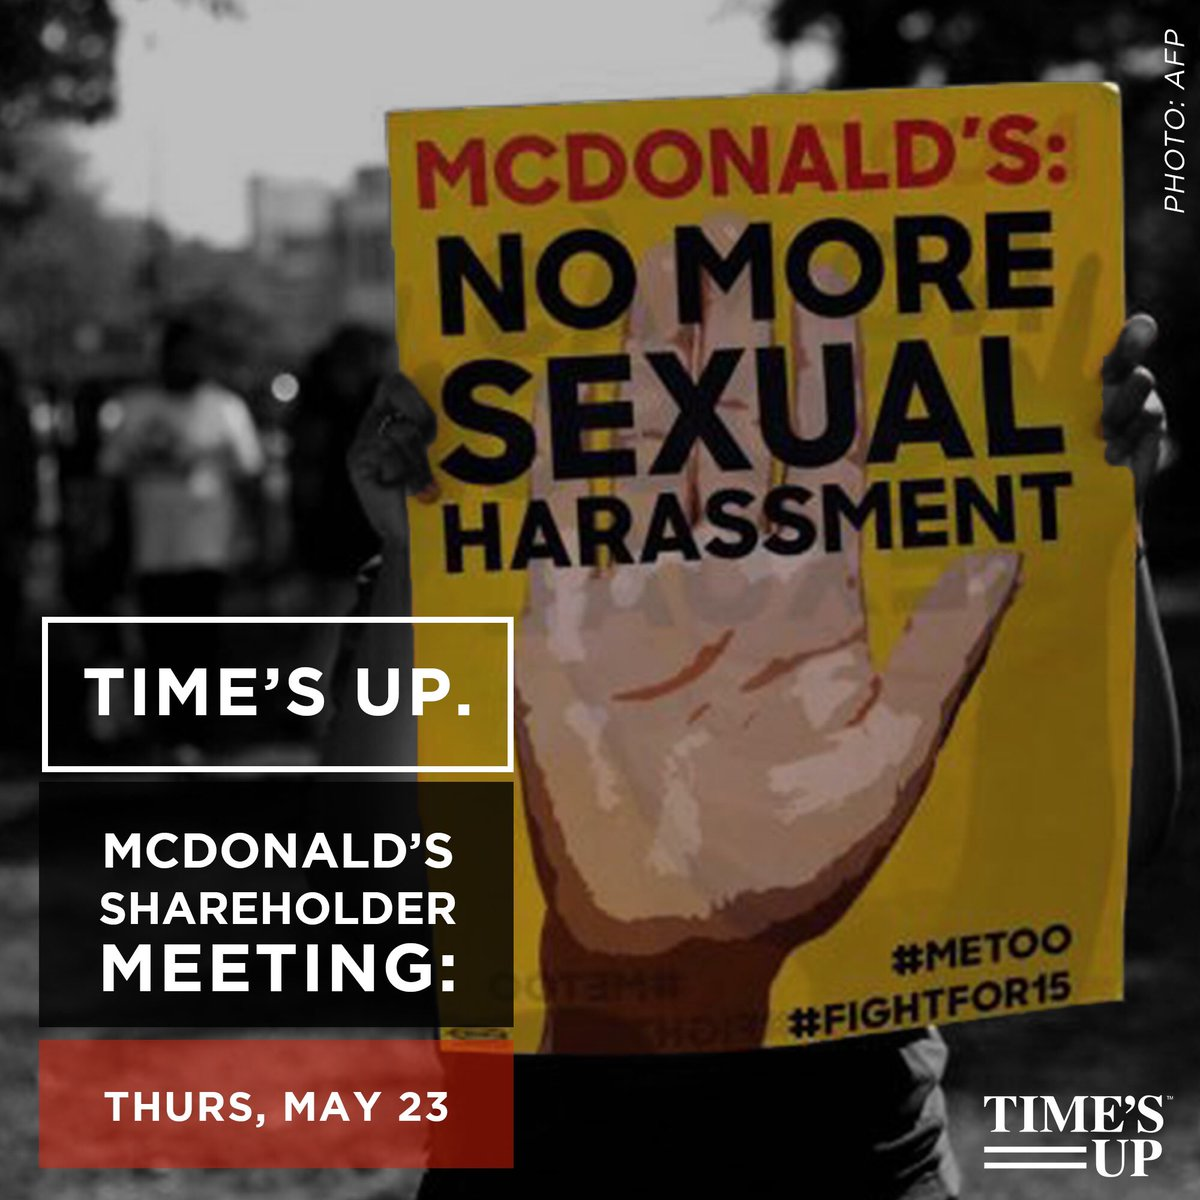 #TIMESUP, @McDonaldsCorp! It's time for you to take action to protect your 1.9 million employees from sexual harassment and retaliation at @McDonalds restaurants. Add your name: bit.ly/2M7rtB0